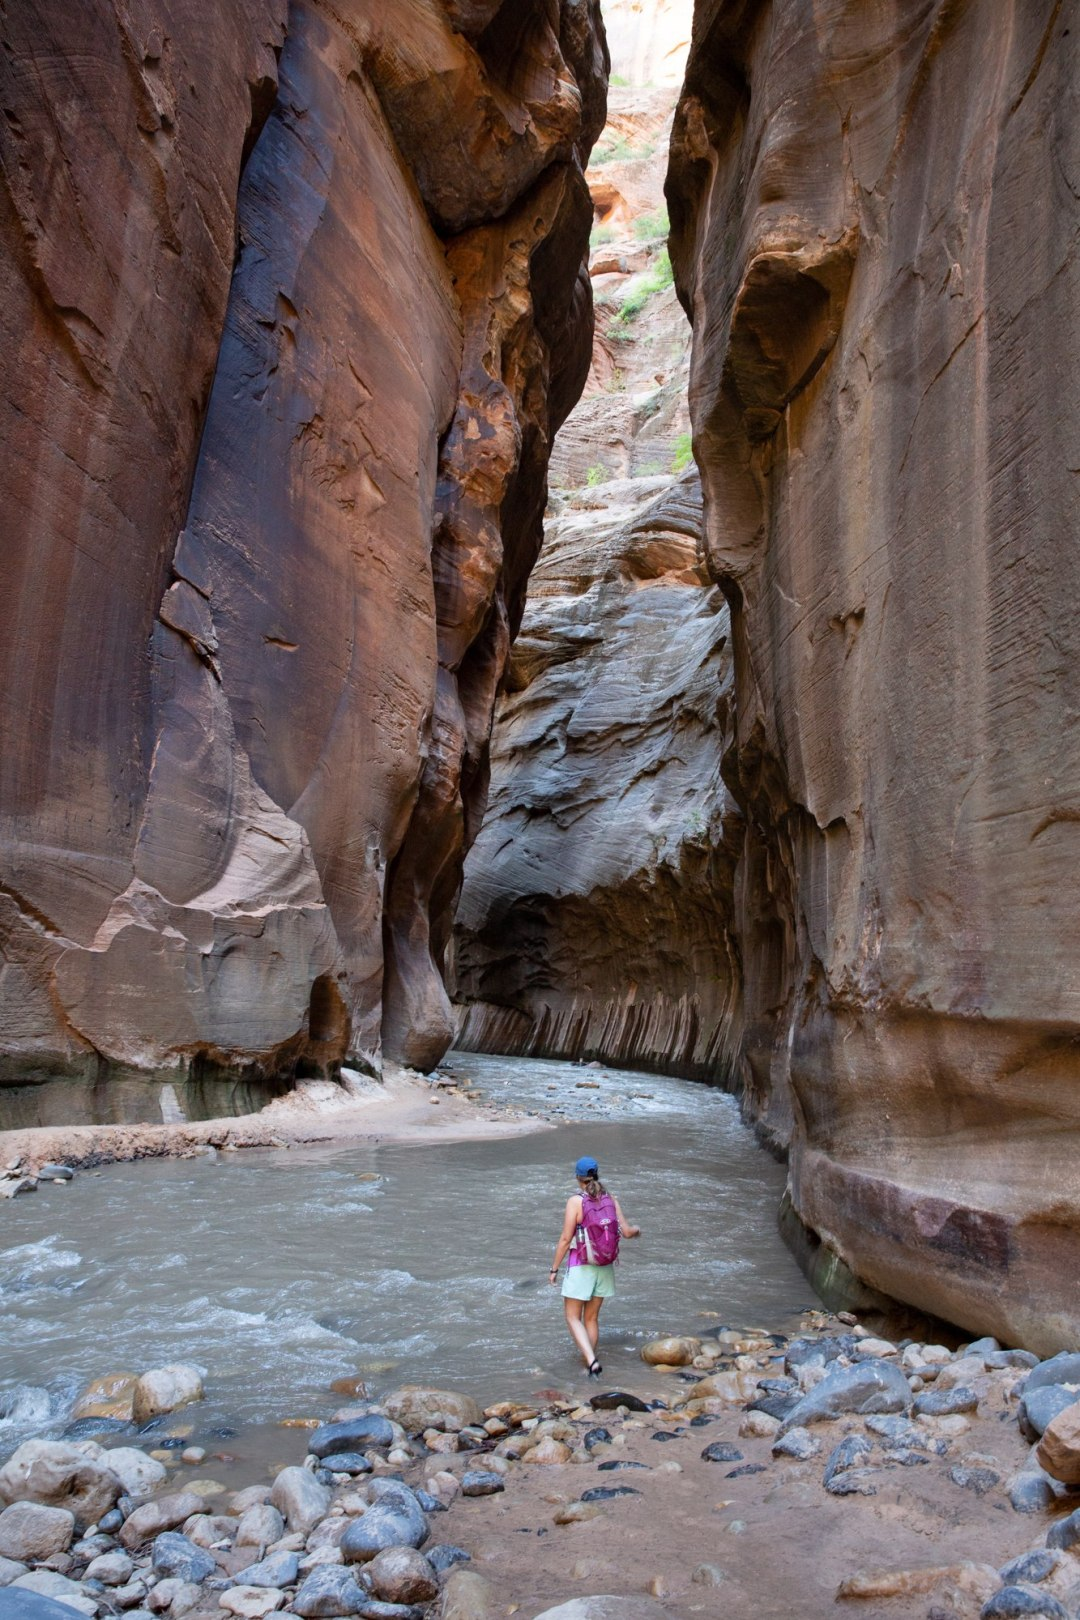 Always save a little time for adventure!  Beck wades through a section of the Narrows